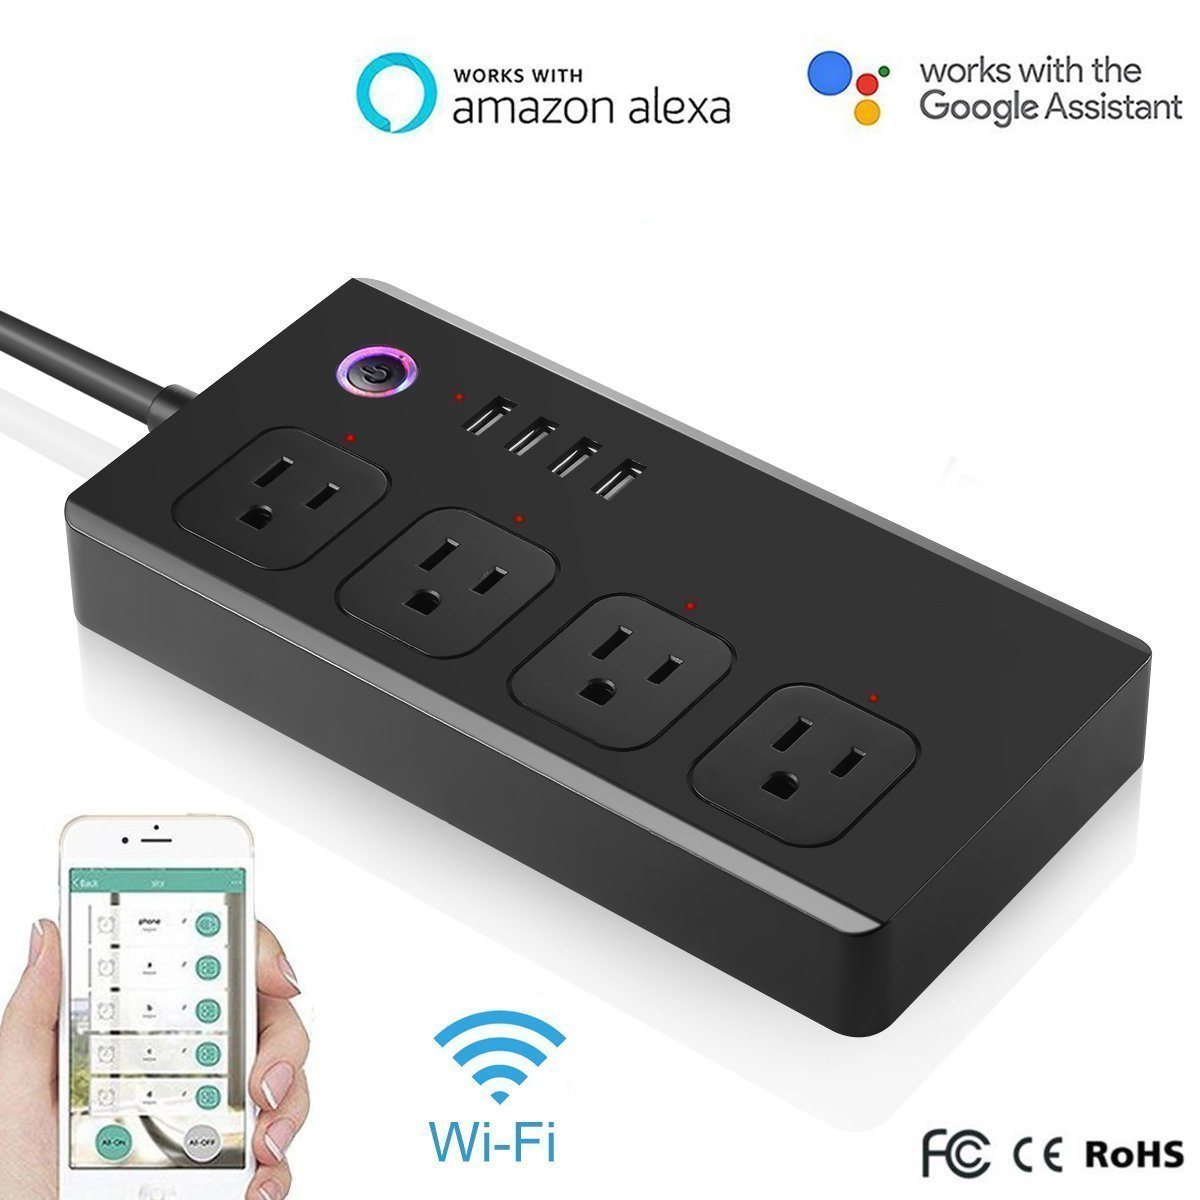 WiFi Power Strip,Surge Protector Smart 4 Outlet Plug Voice Controlled by Amazon Echo Dot,Wireless Remote Control,4 USB Ports